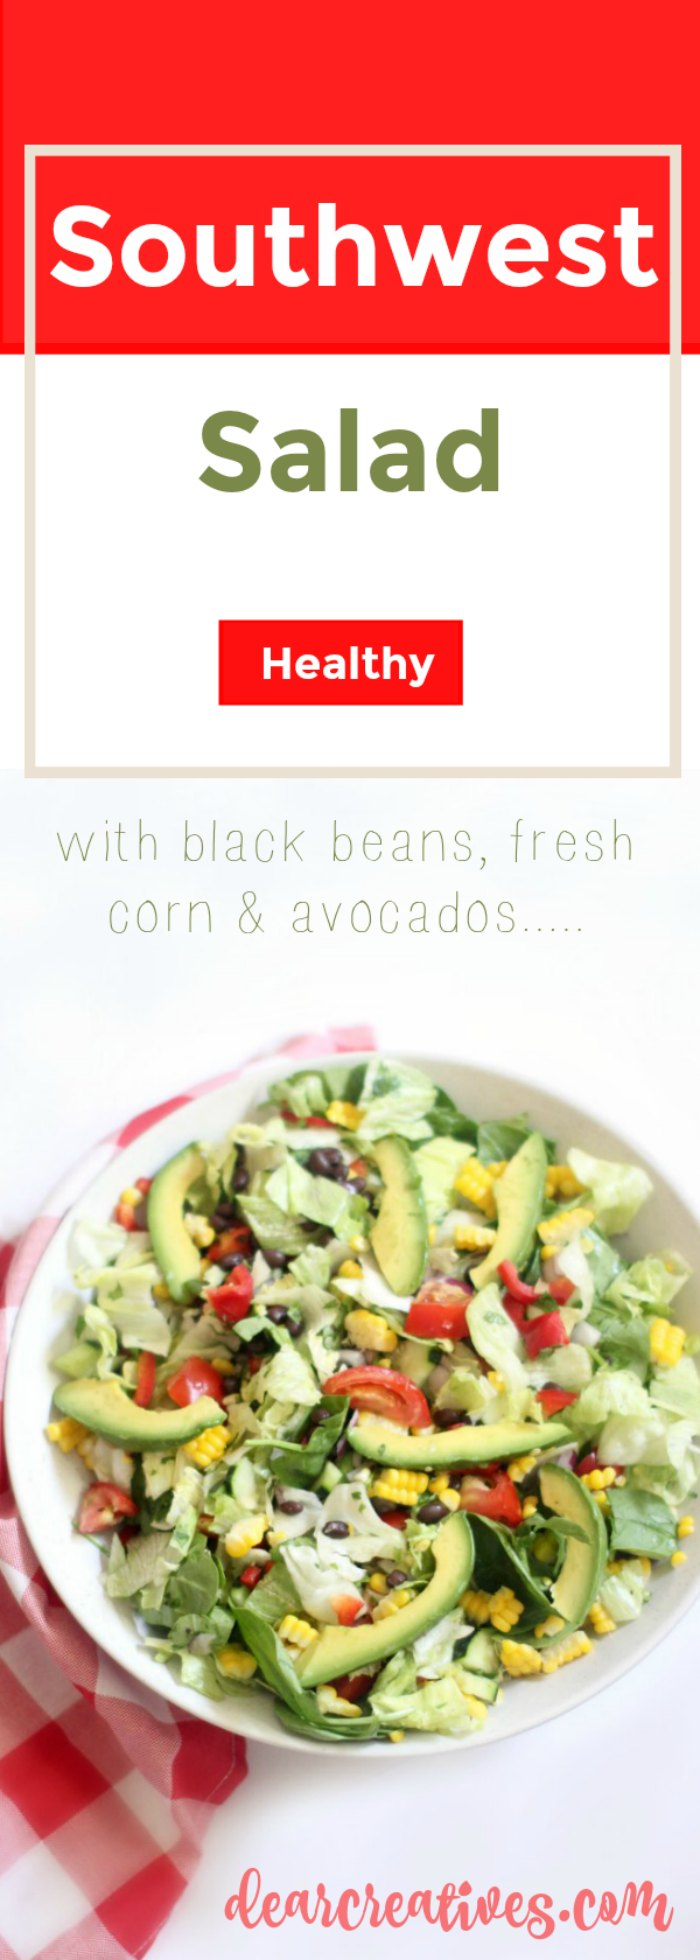 Southwest Salad with black beans, fresh corn, avocados. Grab this easy, healthy and delicious salad recipe at DearCreatives.com